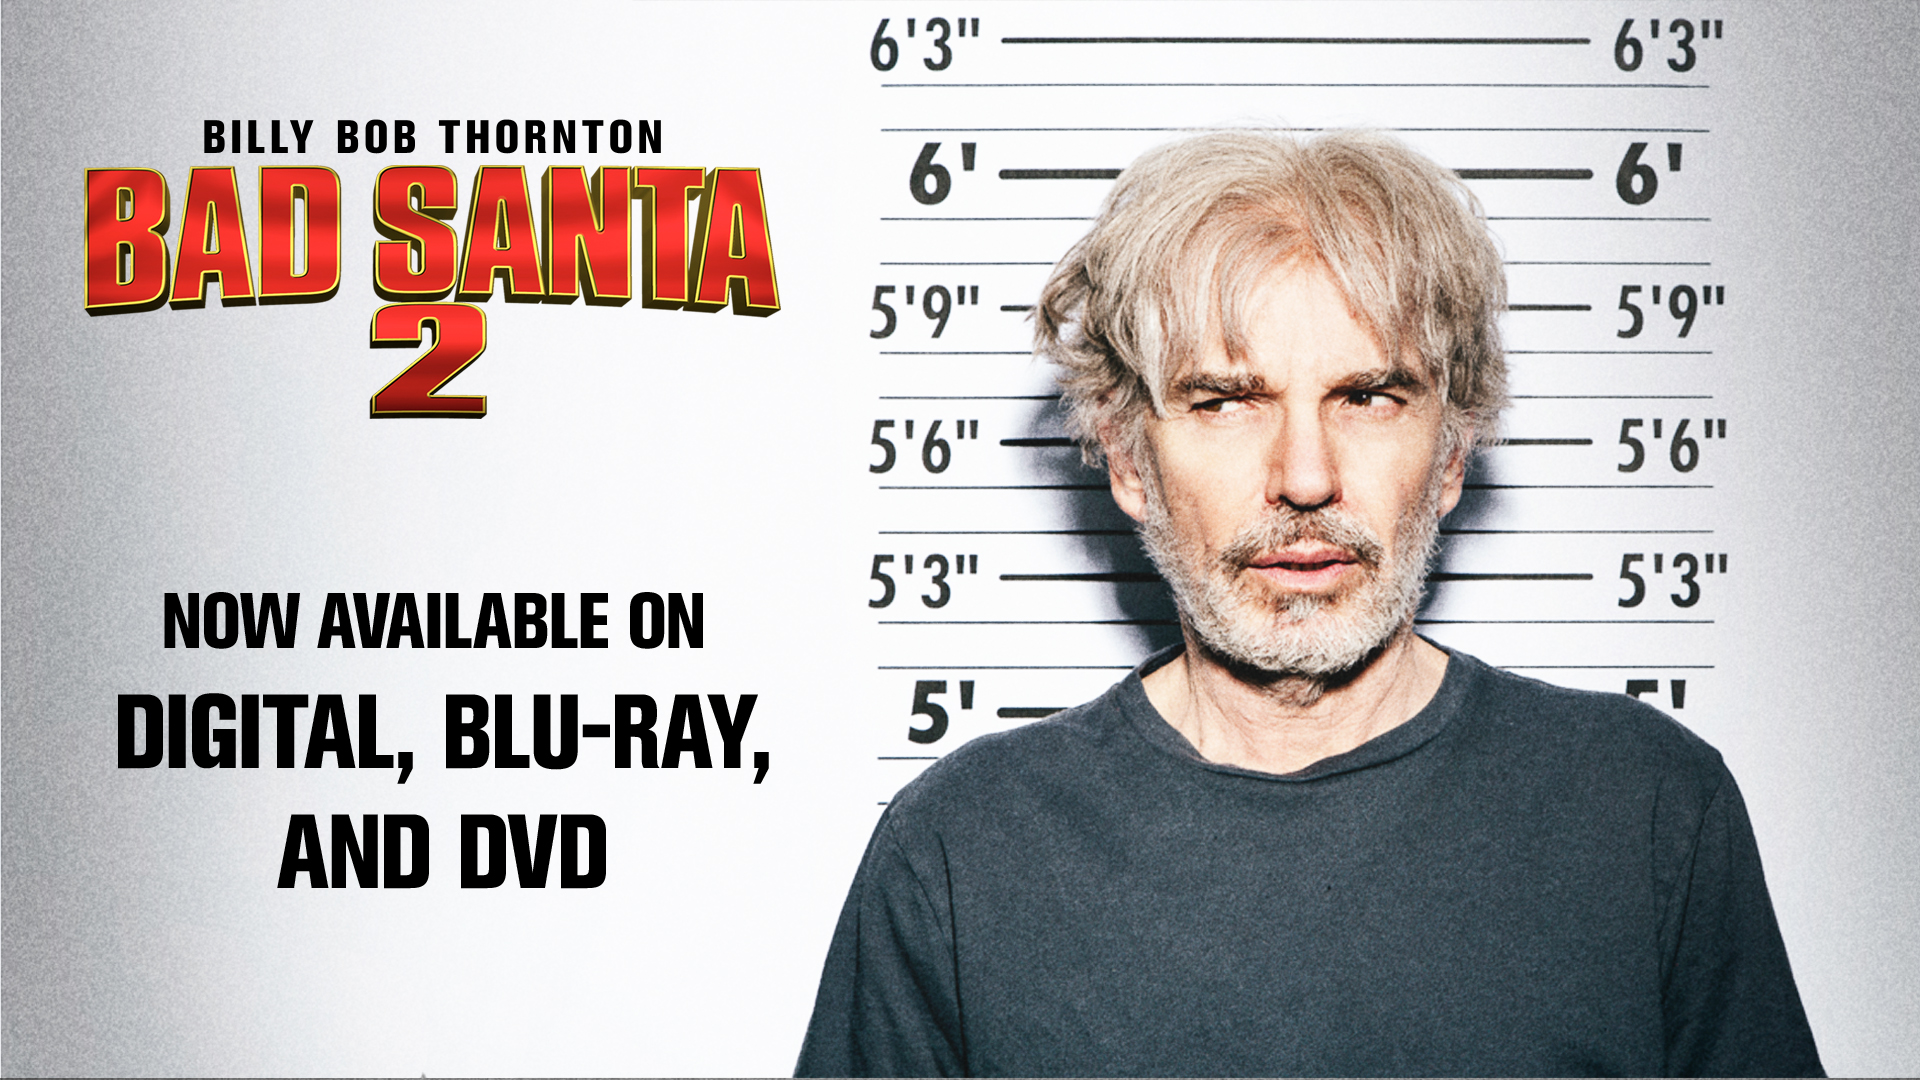 - Bad Santa 2 - Home Entertainment Trailer